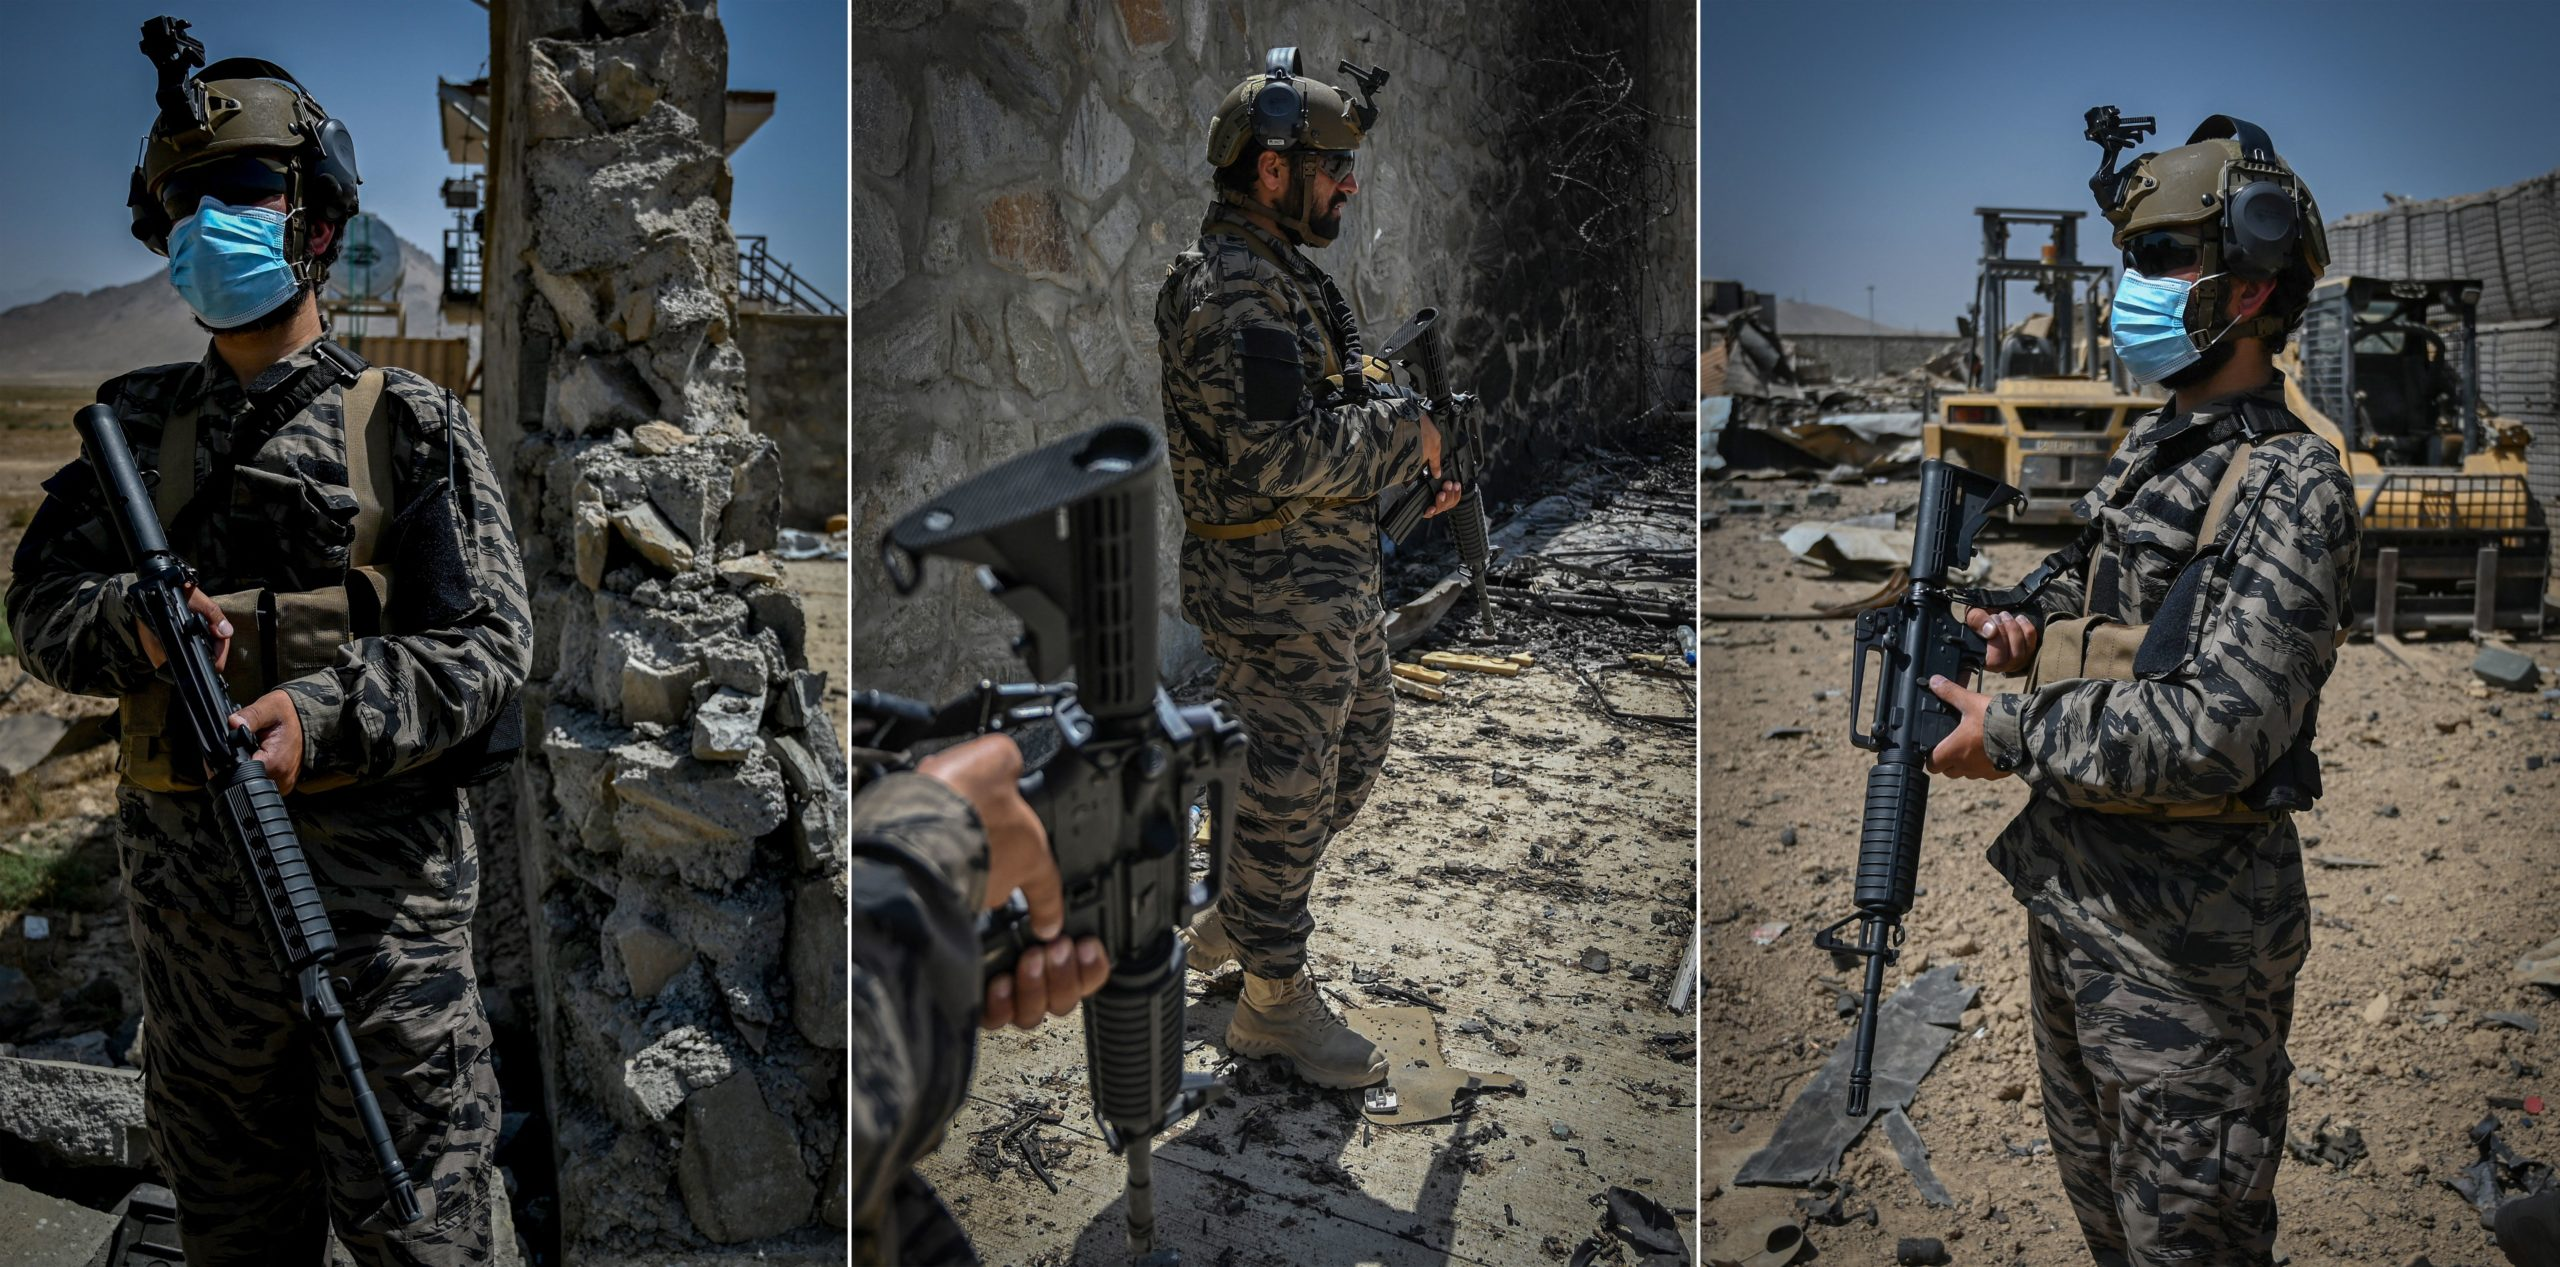 A compilation of photos shows members of the Taliban Badri 313 military unit wearing U.S. gear standing guard outside the debris of the destroyed Central Intelligence Agency base in Kabul, Afghanistan. (Aamir Qureshi/AFP via Getty Images)